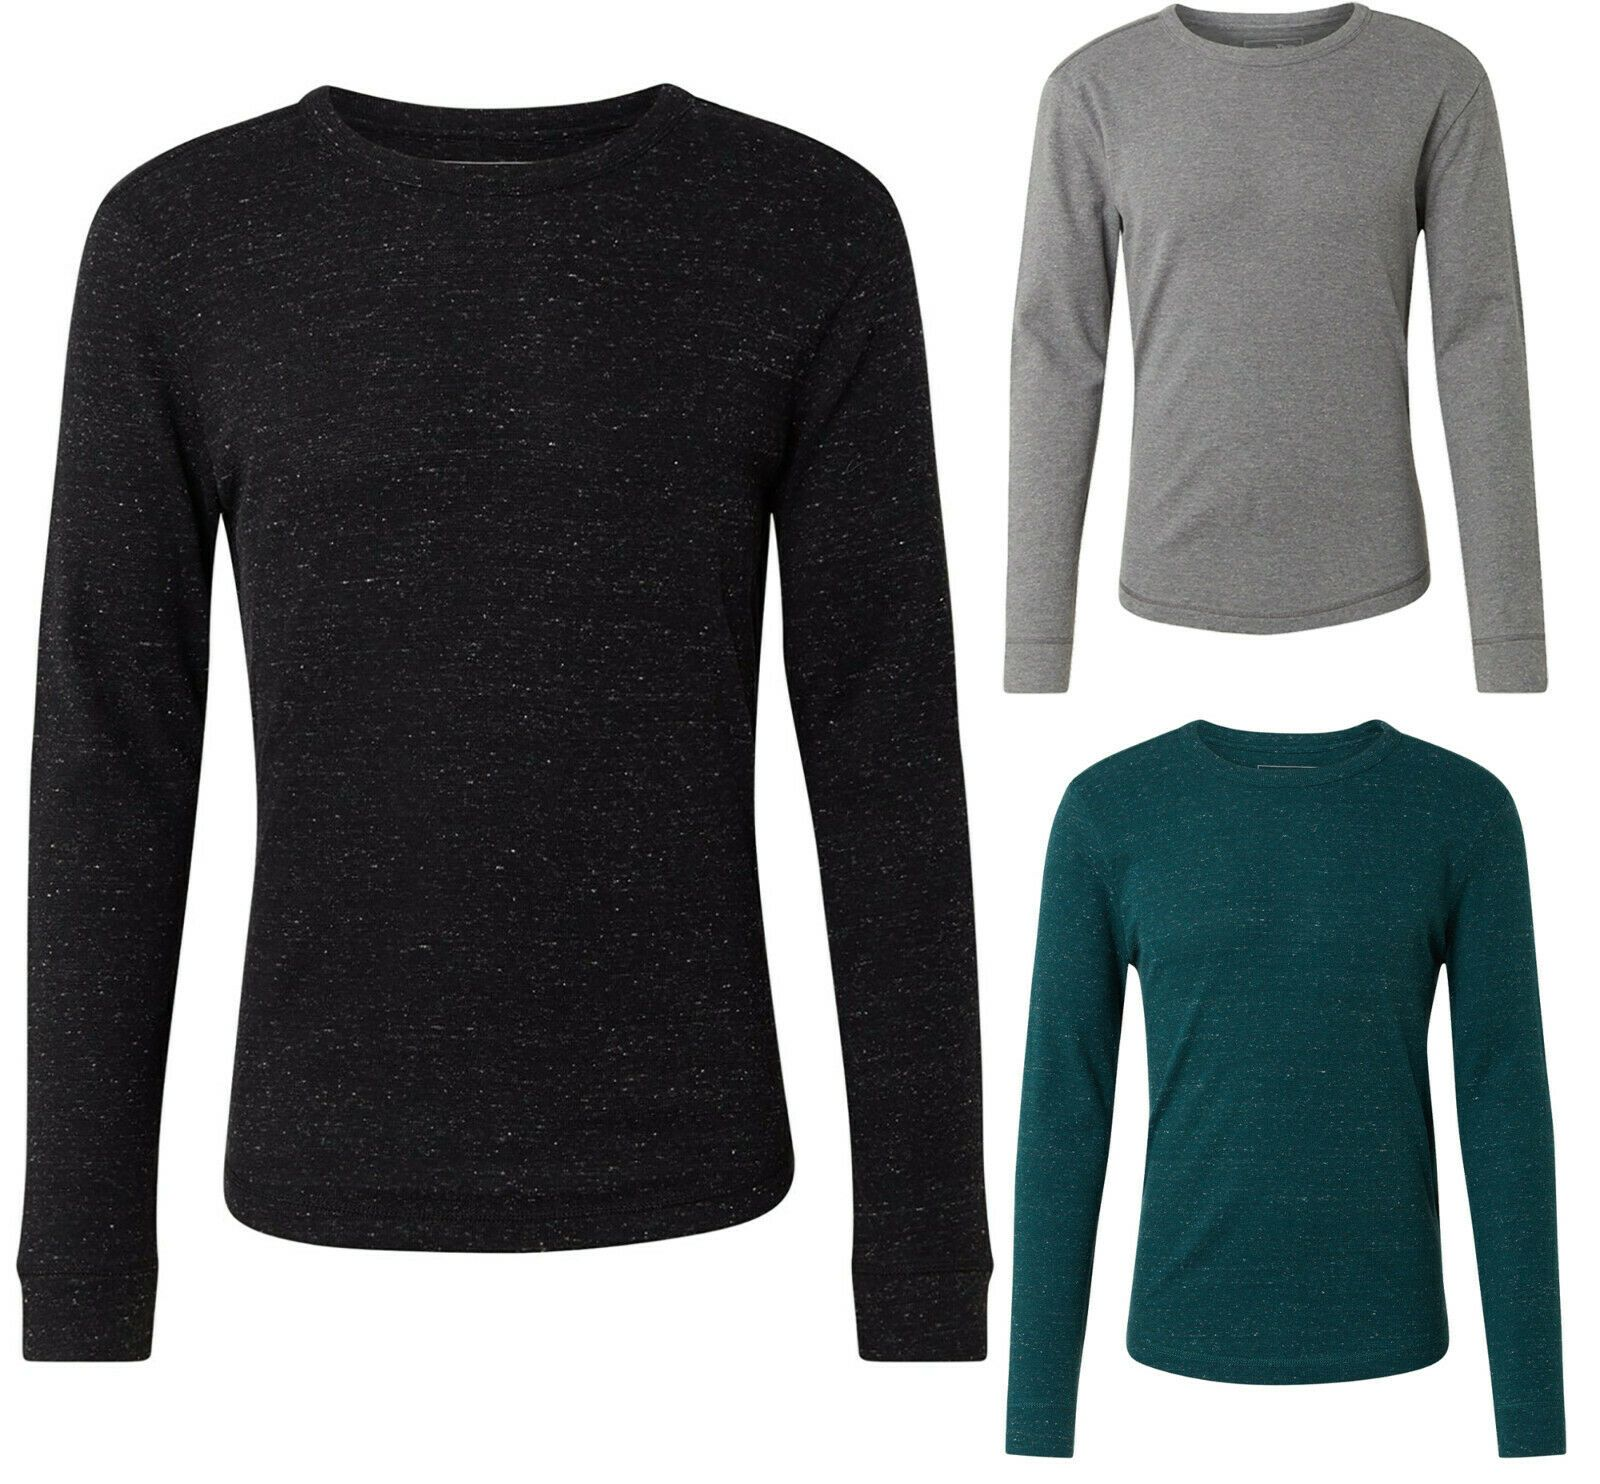 TOM TAILOR DENIM T-Shirts/Tops Langarmshirt mit Rundhalsausschnitt 1014541 - Jack & Jones